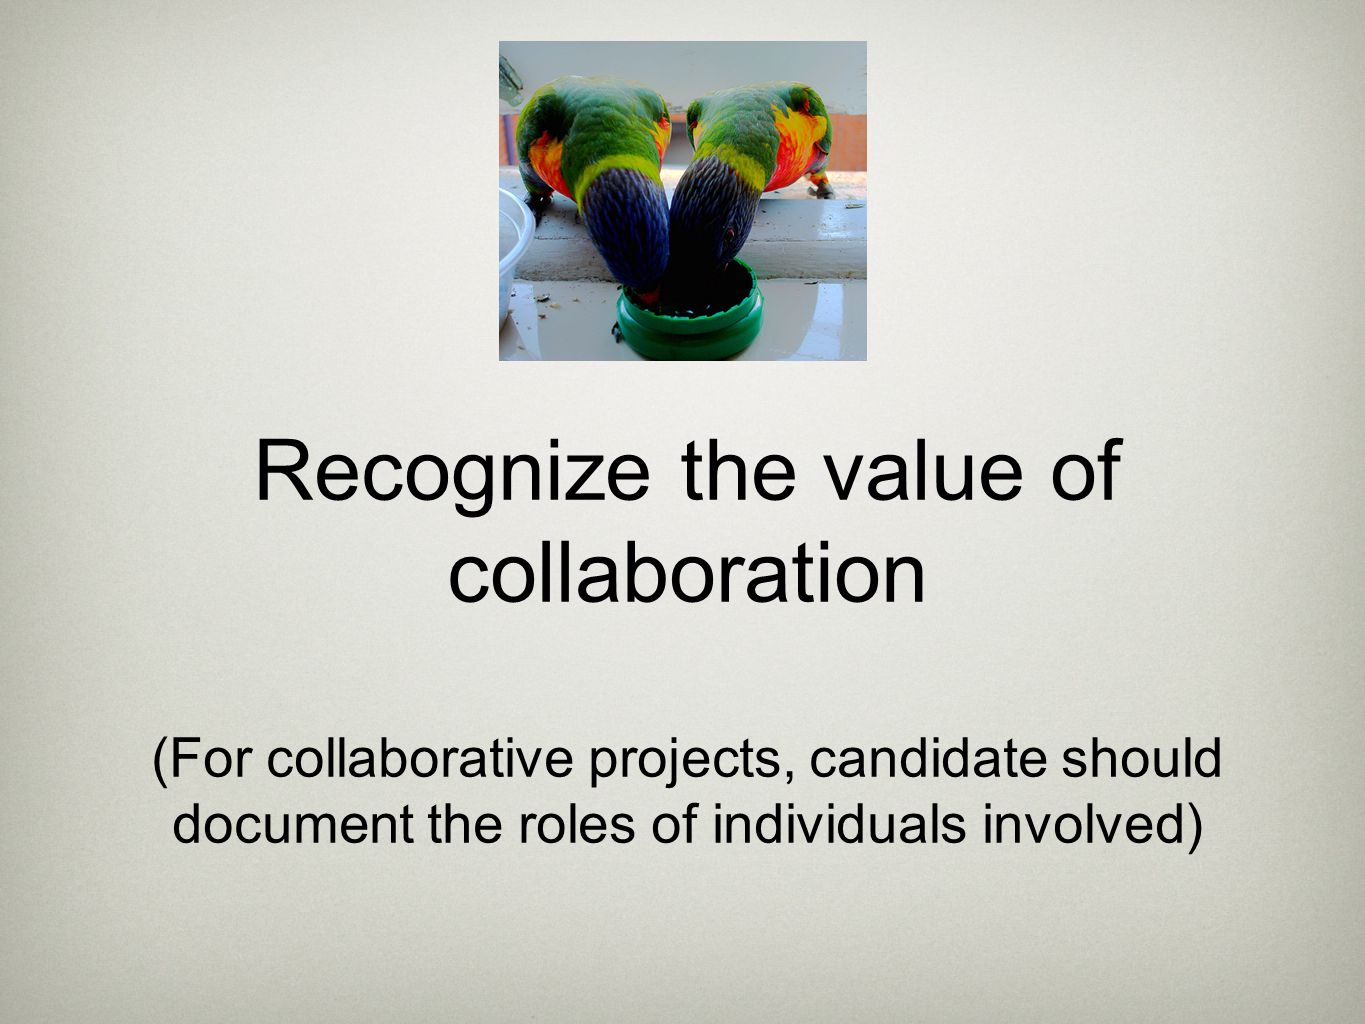 Recognize the value of collaboration (For collaborative projects, candidate should document the roles of individuals involved)